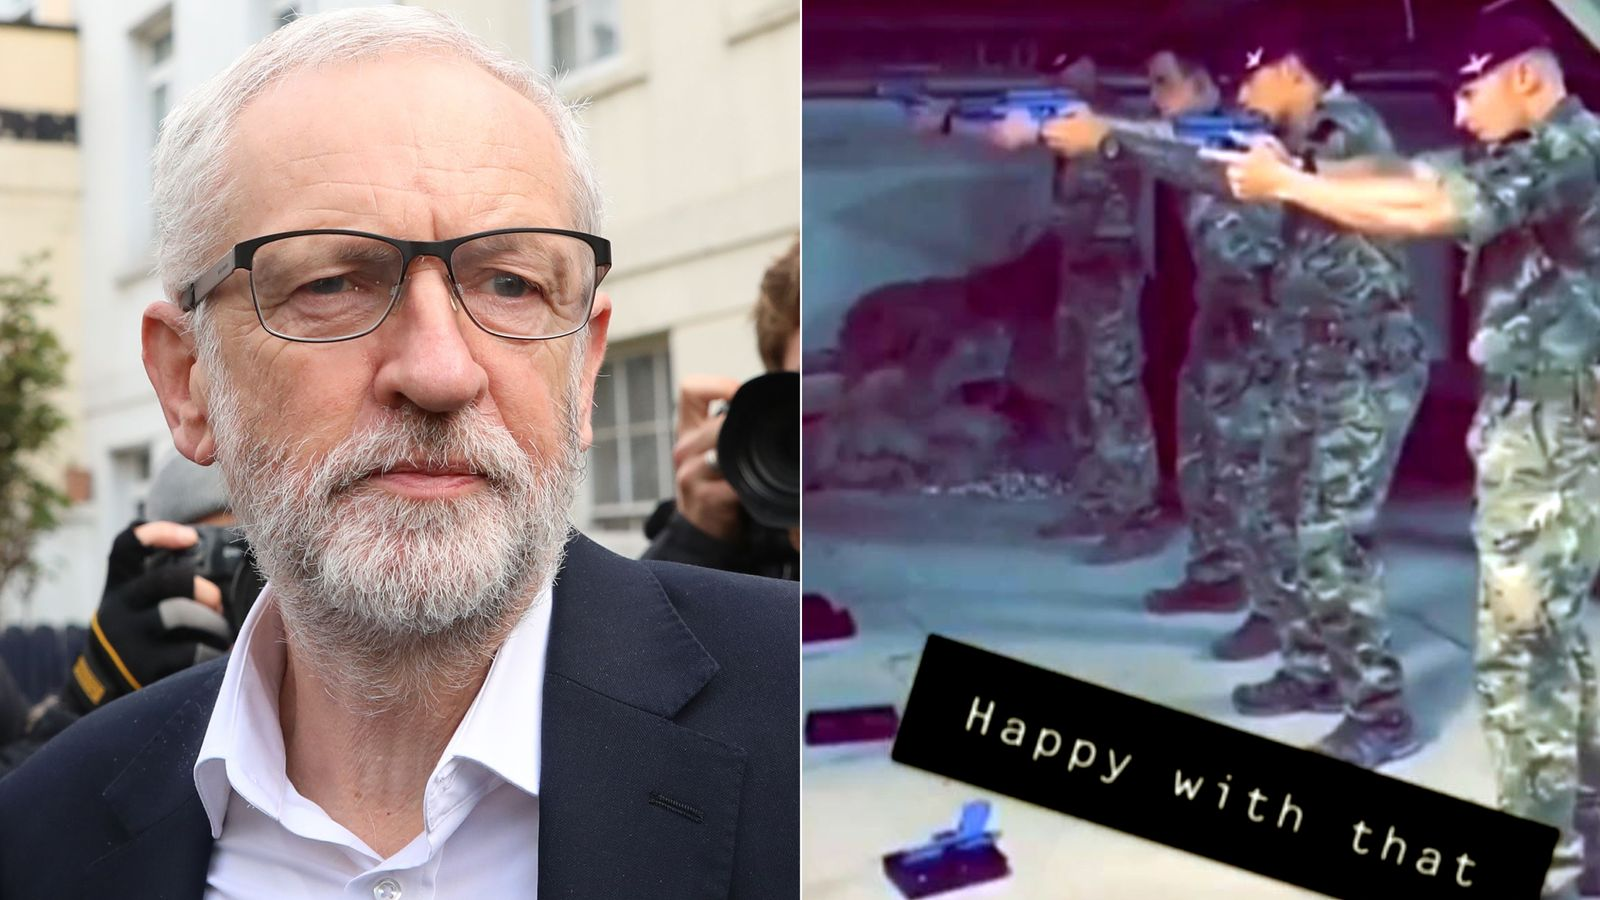 Soldiers disciplined after using picture of Corbyn for target practice